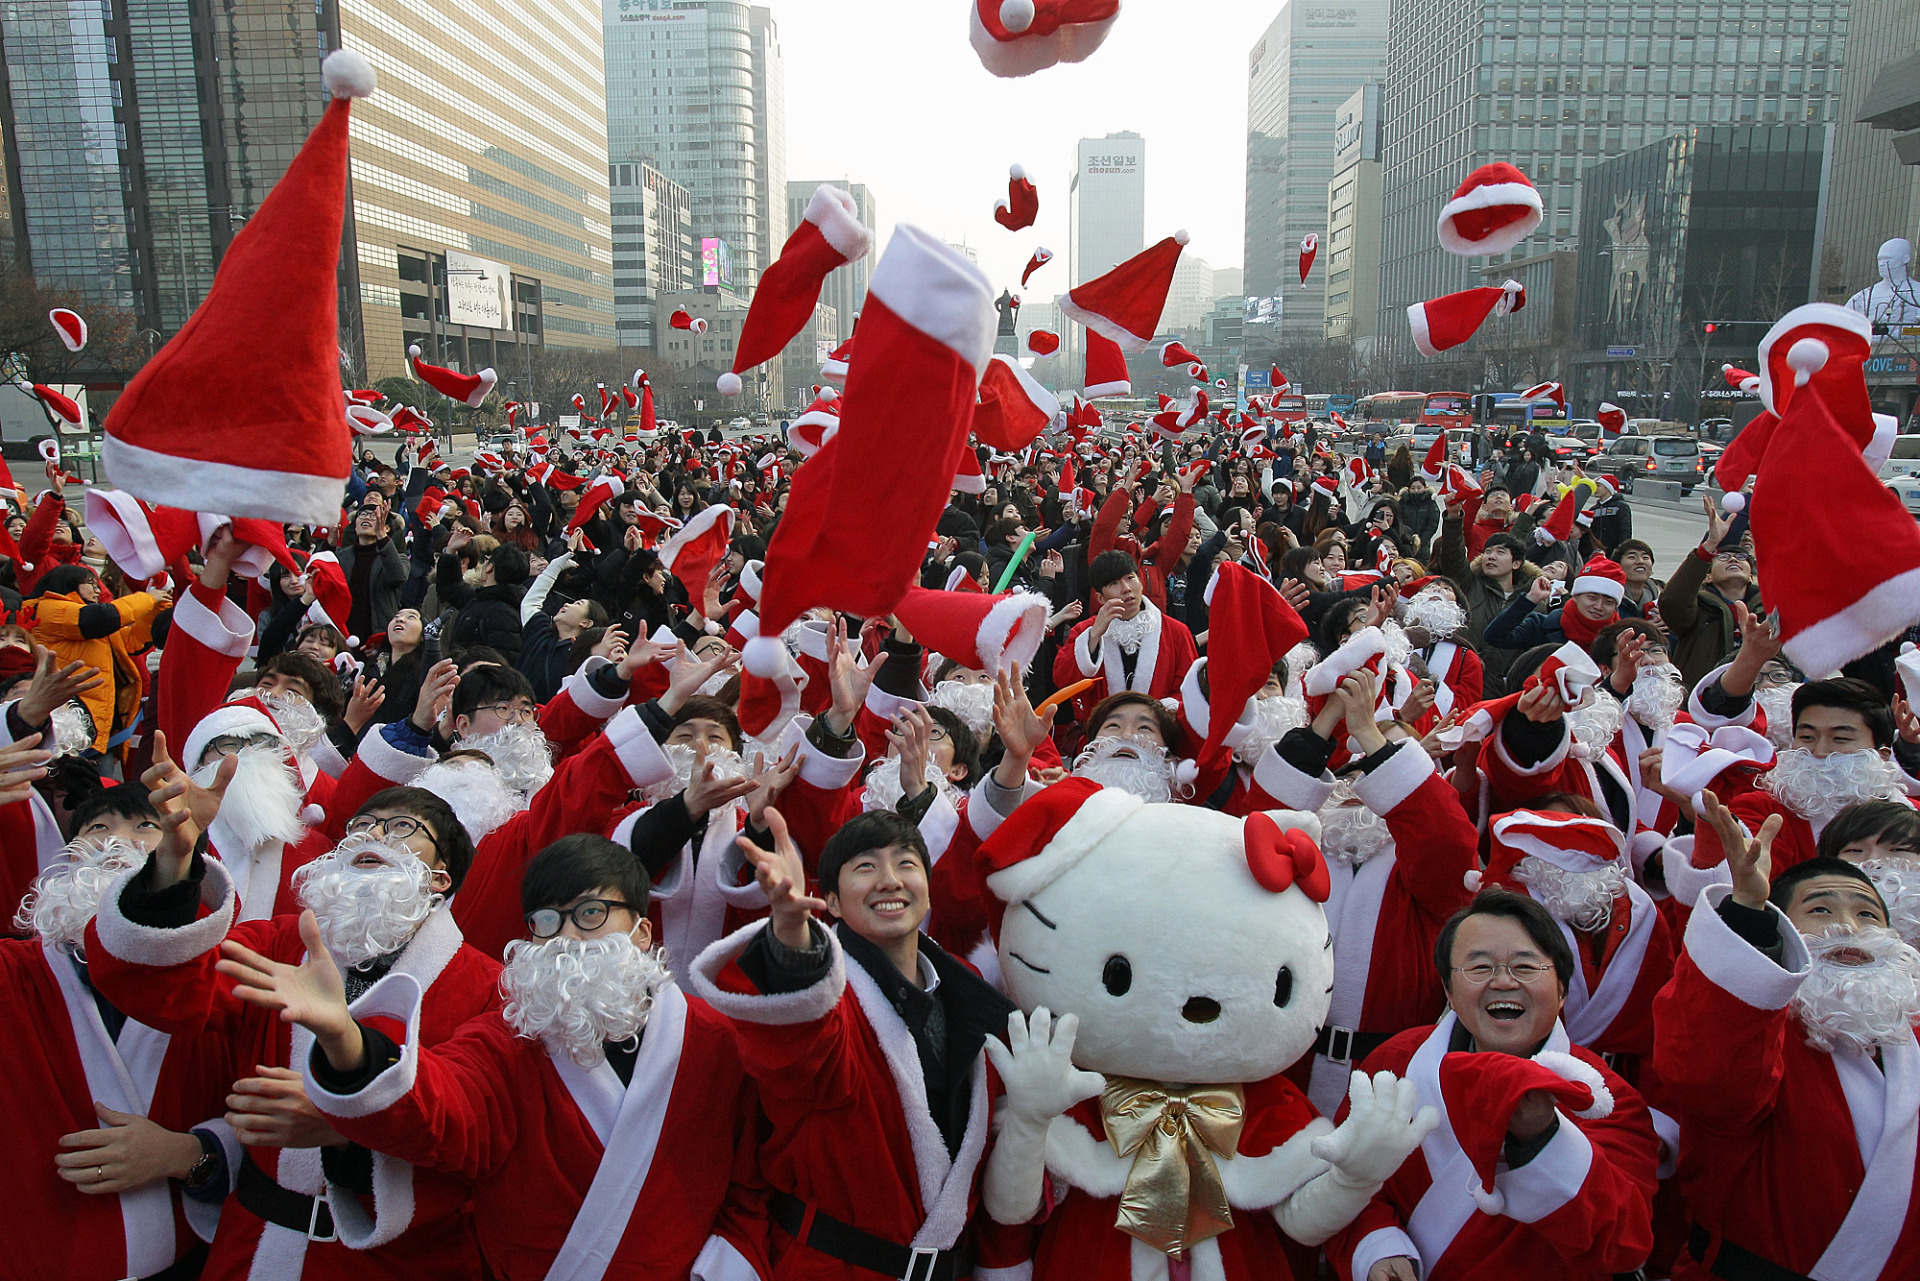 Christmas In Korea.Funny Photo Of The Day For Monday 28 December 2015 From